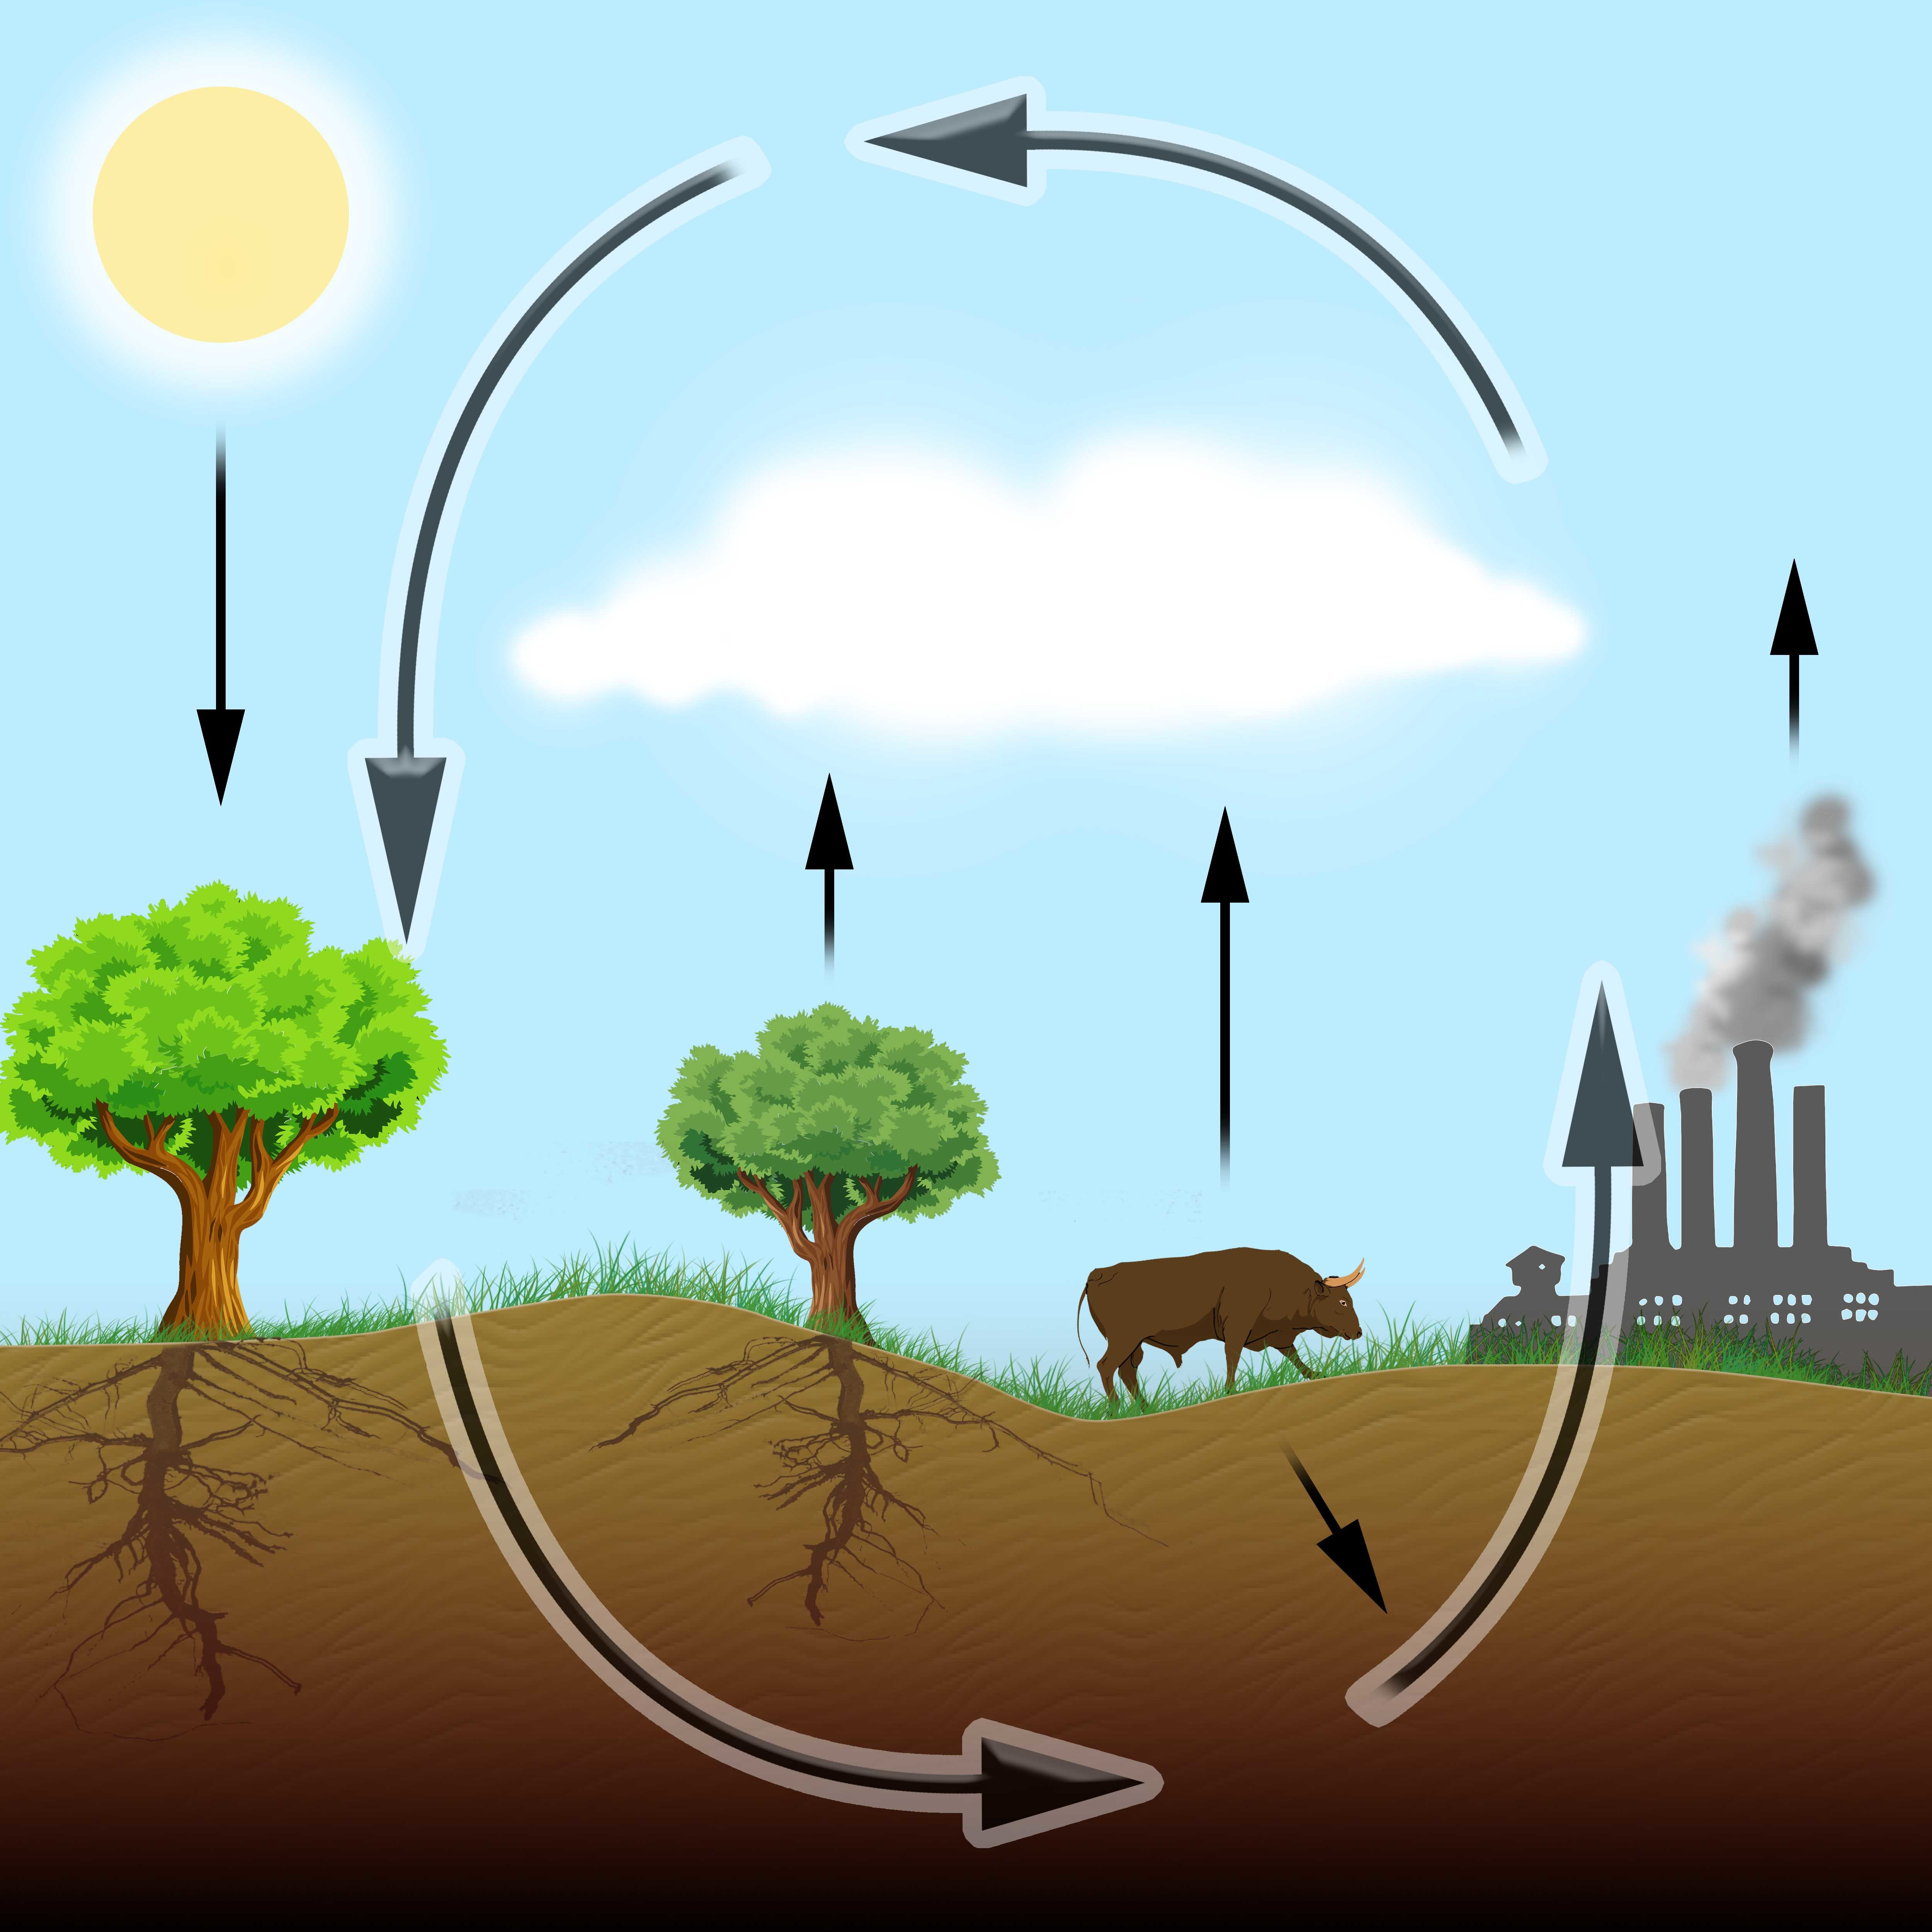 The carbon cycle showing carbon dioxide is produced by plants and animals, including humans, through respiration, and also released by combustion